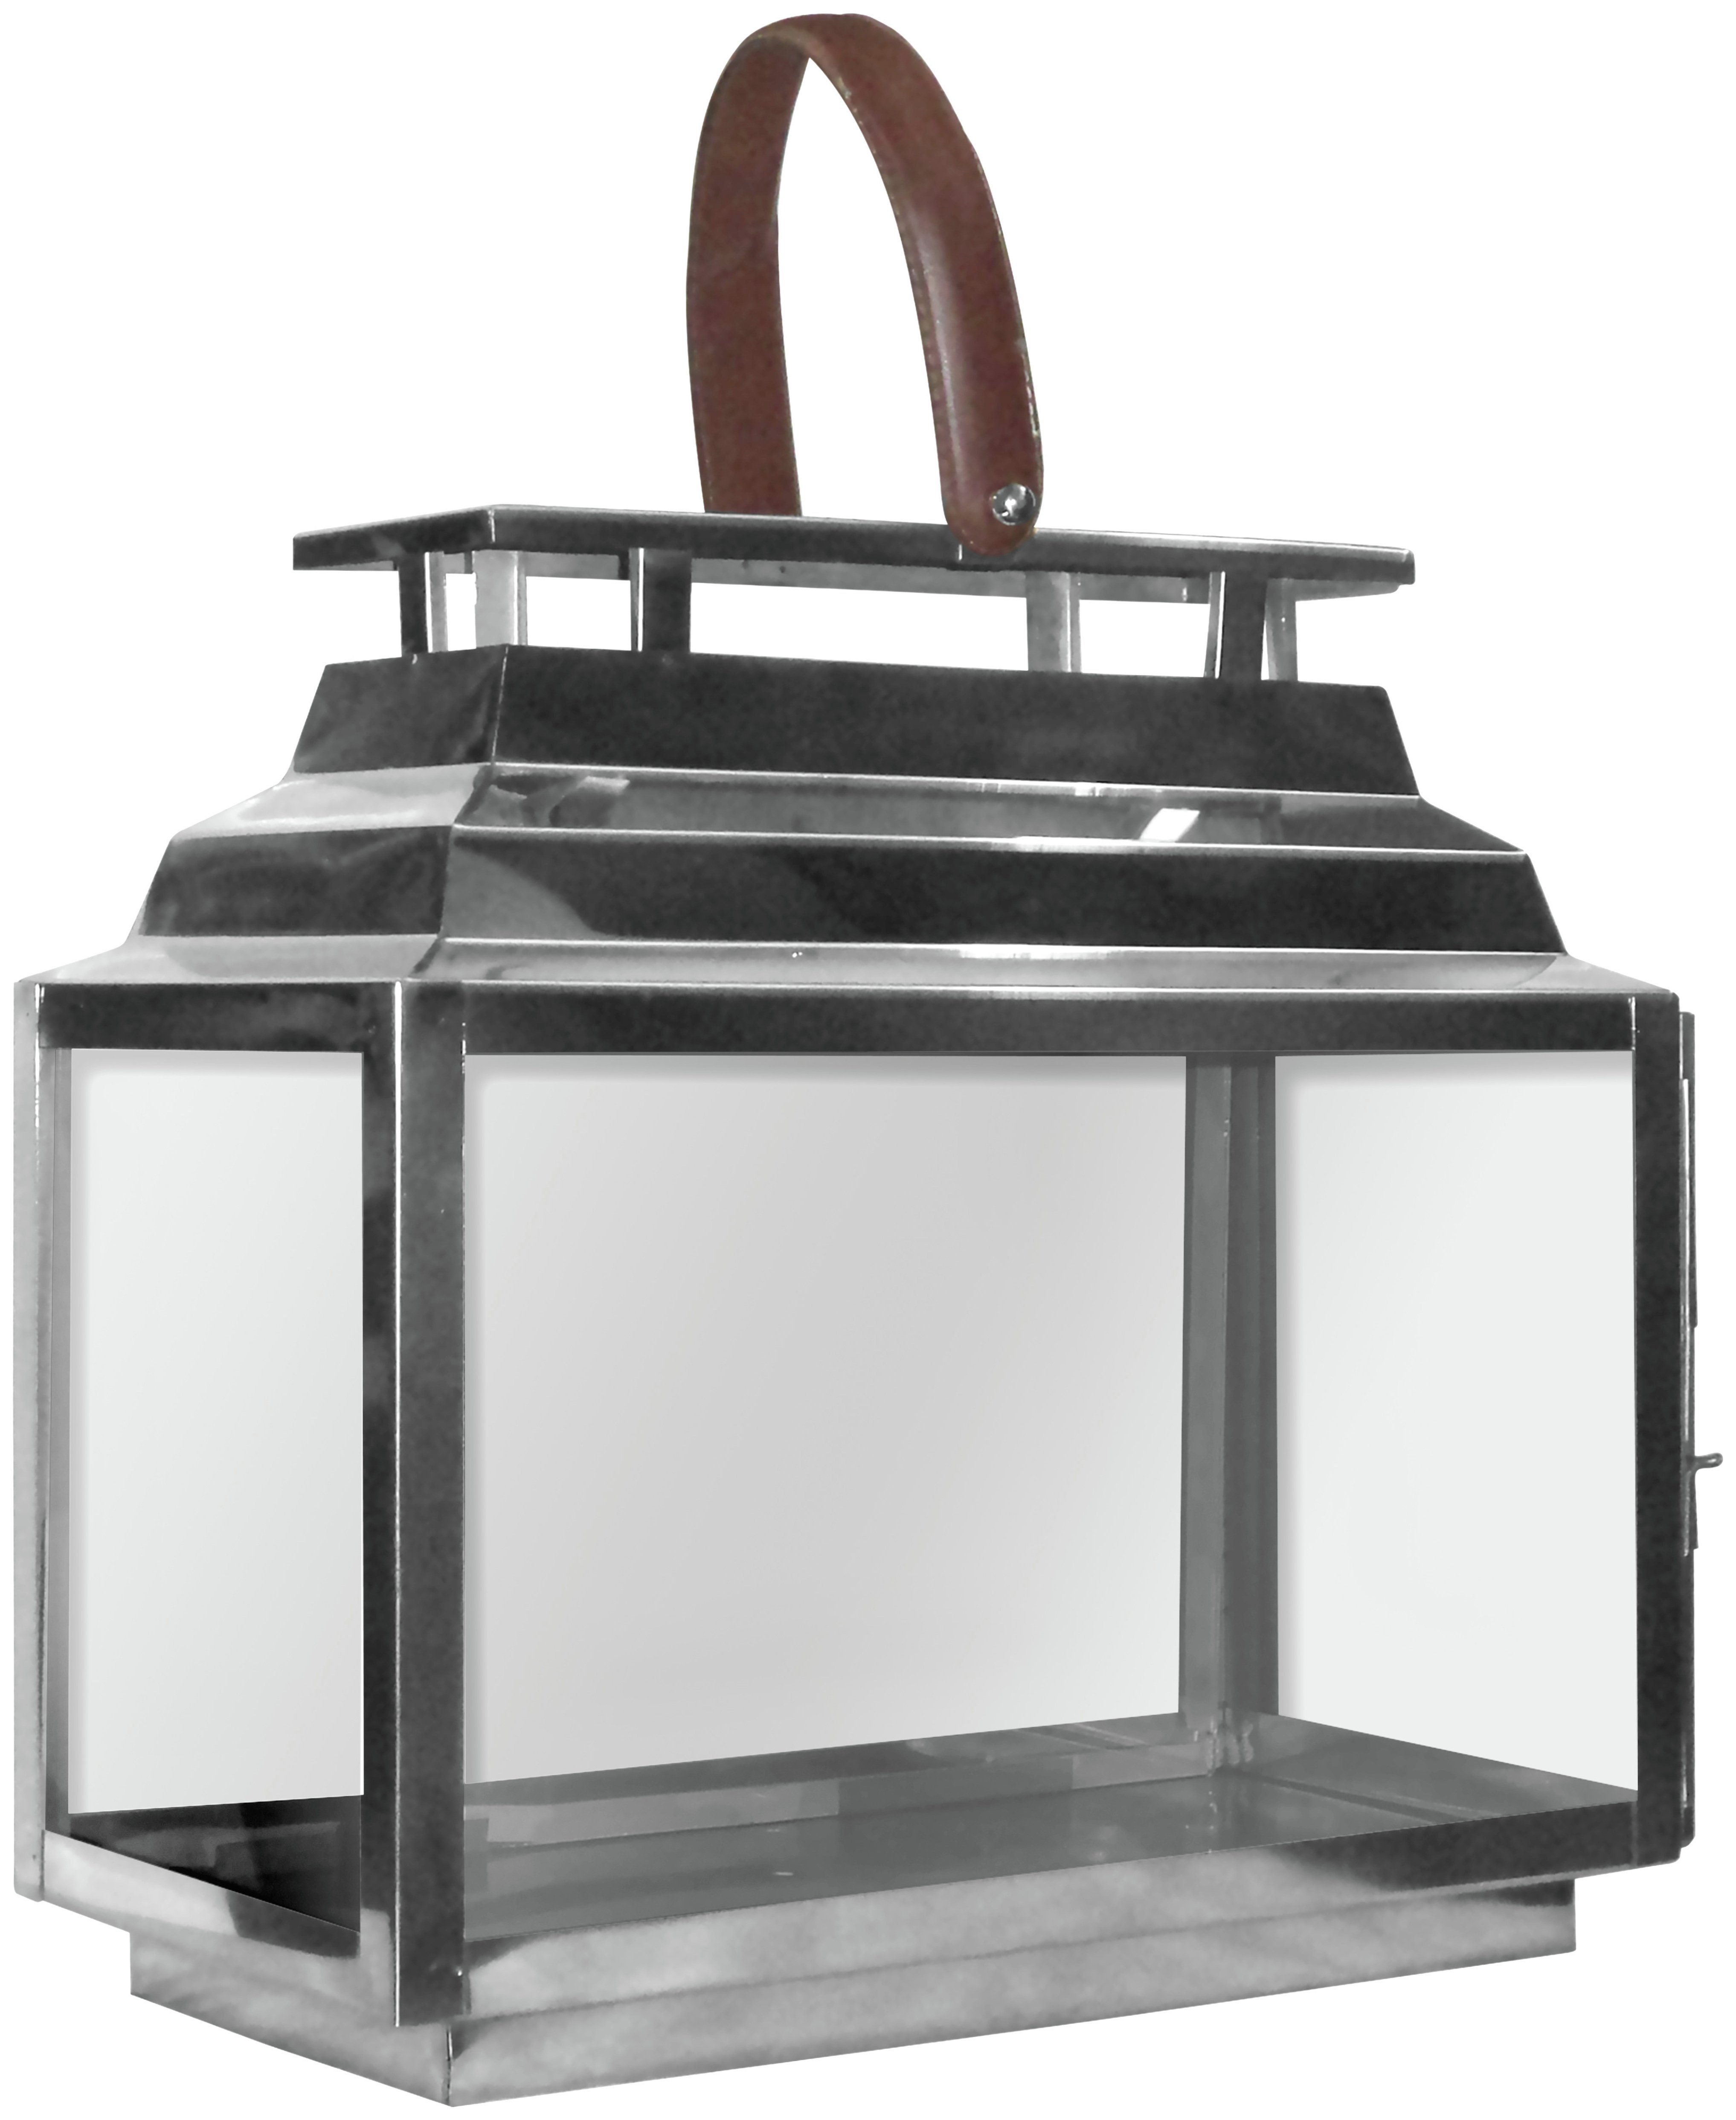 Premier Housewares Complements Leather Effect Glass Lantern. lowest price